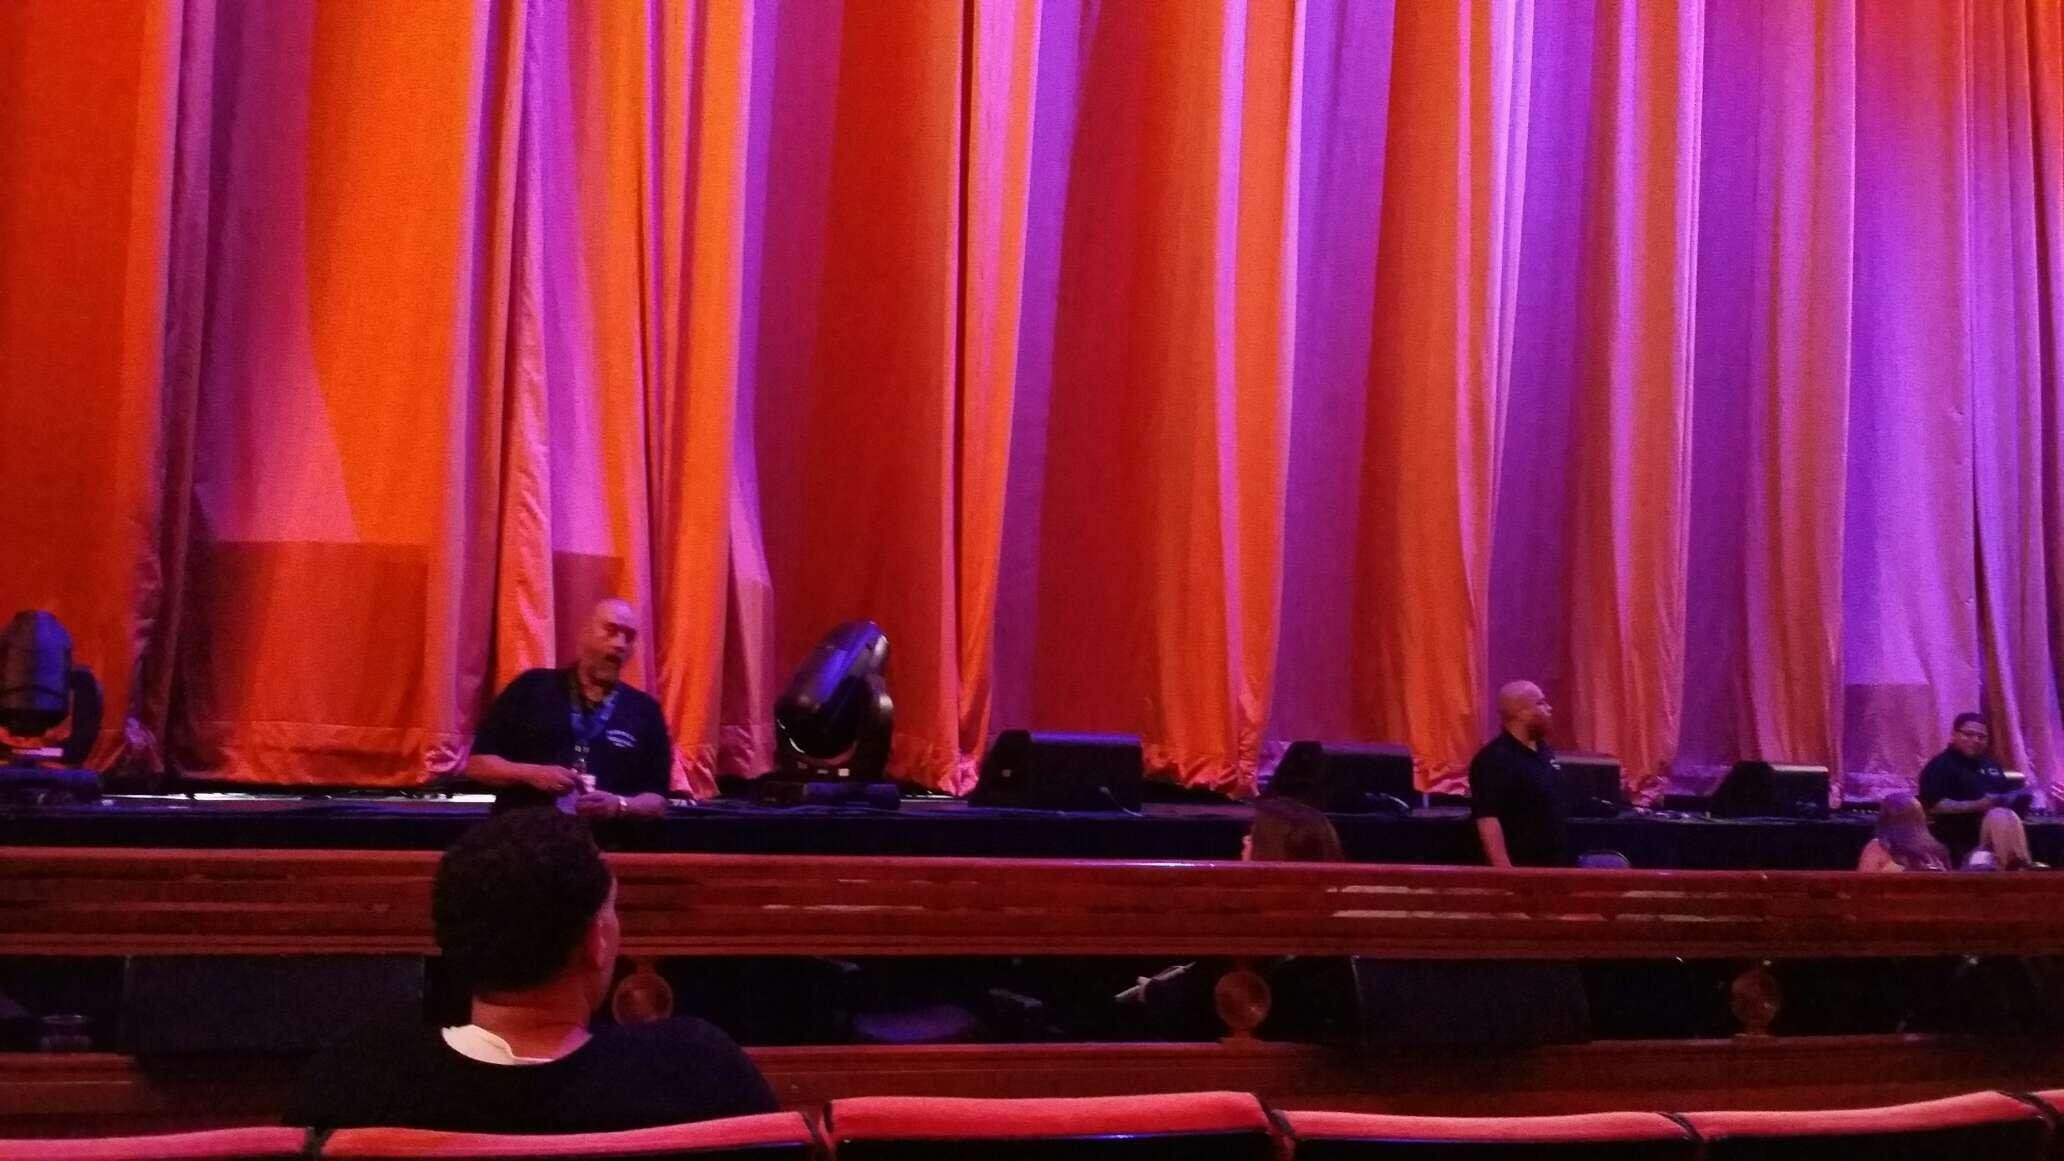 Auditorio Nacional moreover How Would Proposed Changes To The 99 Seat Plan Upe additionally Americas Most Endangered Historic Places 180951839 as well Seat 513 in addition Pantages Theatre   Ca Tickets. on radio city seating chart view